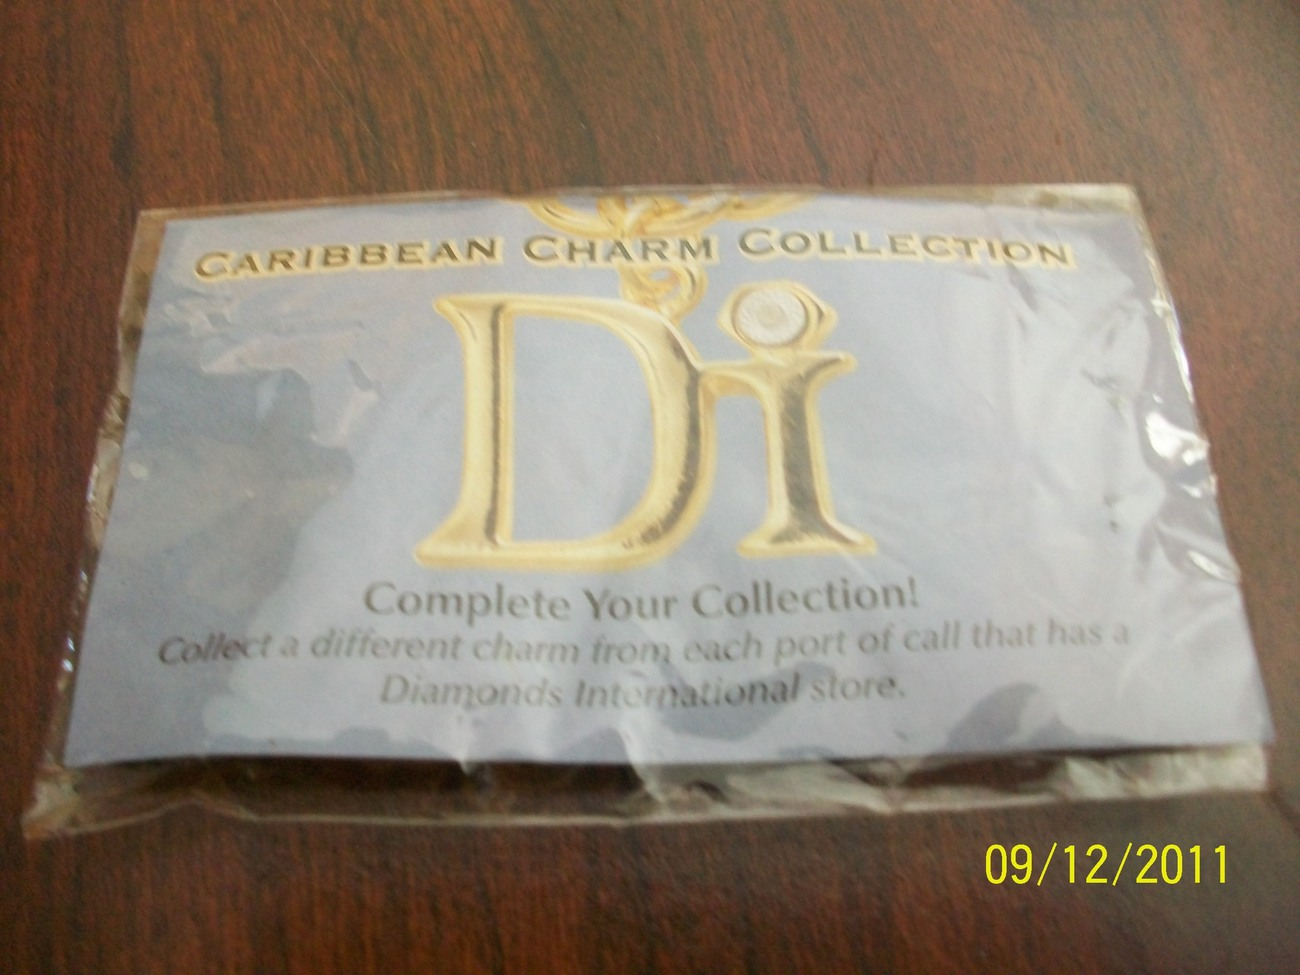 Diamond International Caribbean Charm Collection Bracelet in